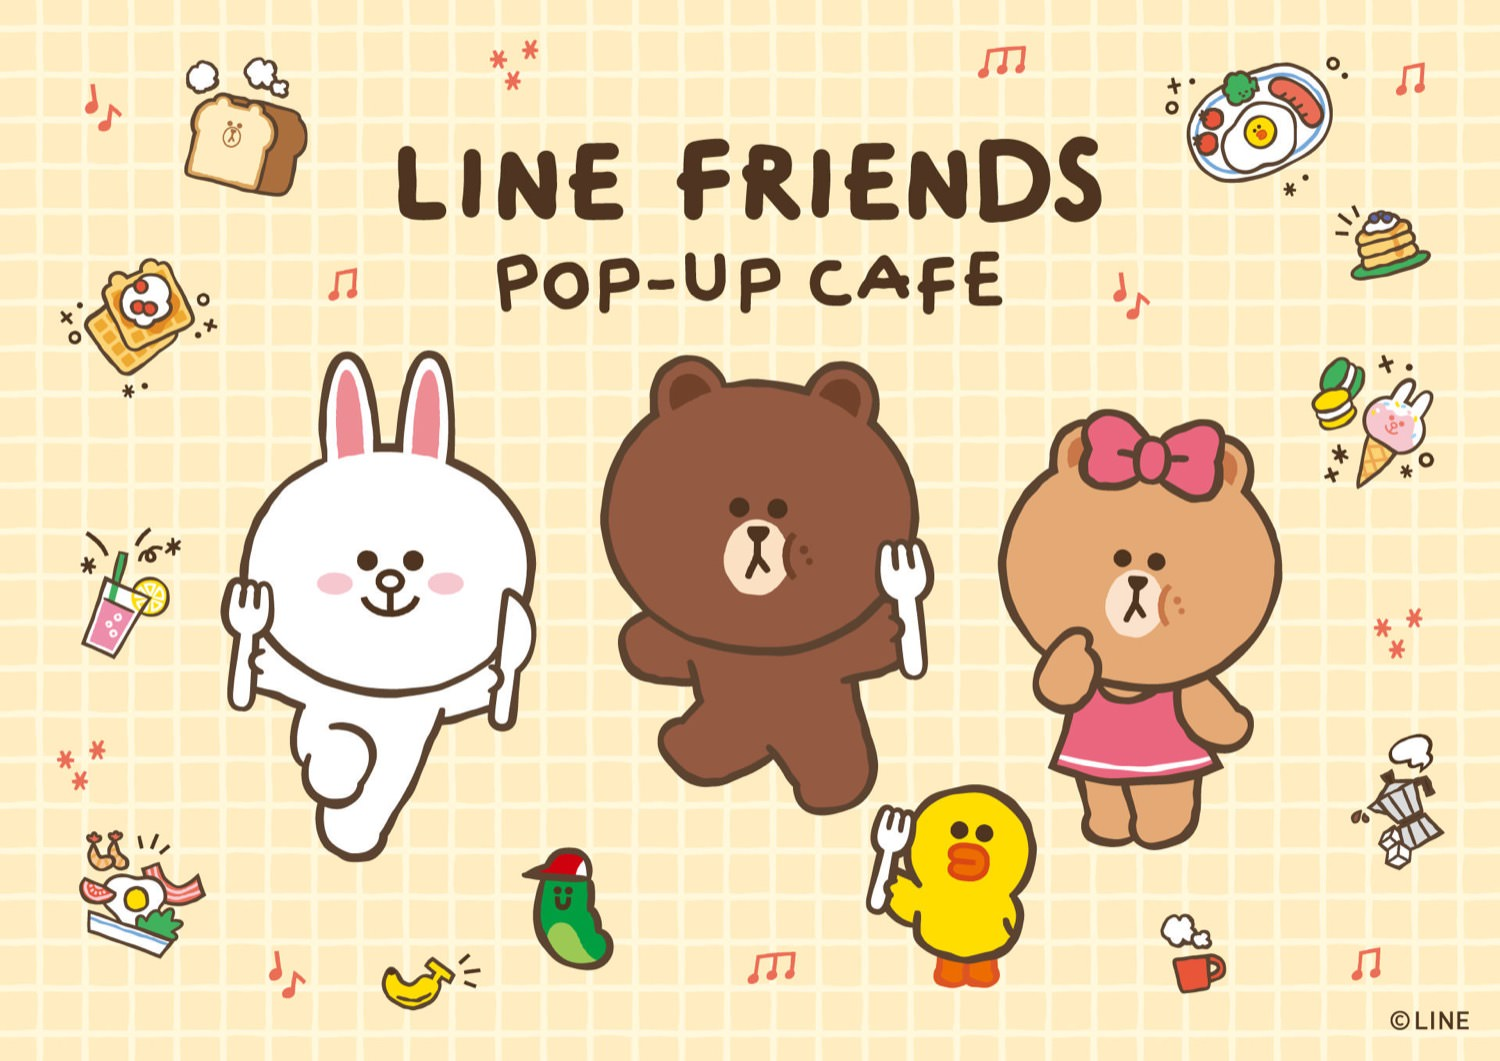 LINE FRIENDSカフェ in THE GUEST池袋パルコ 4.1-4.25 開催!